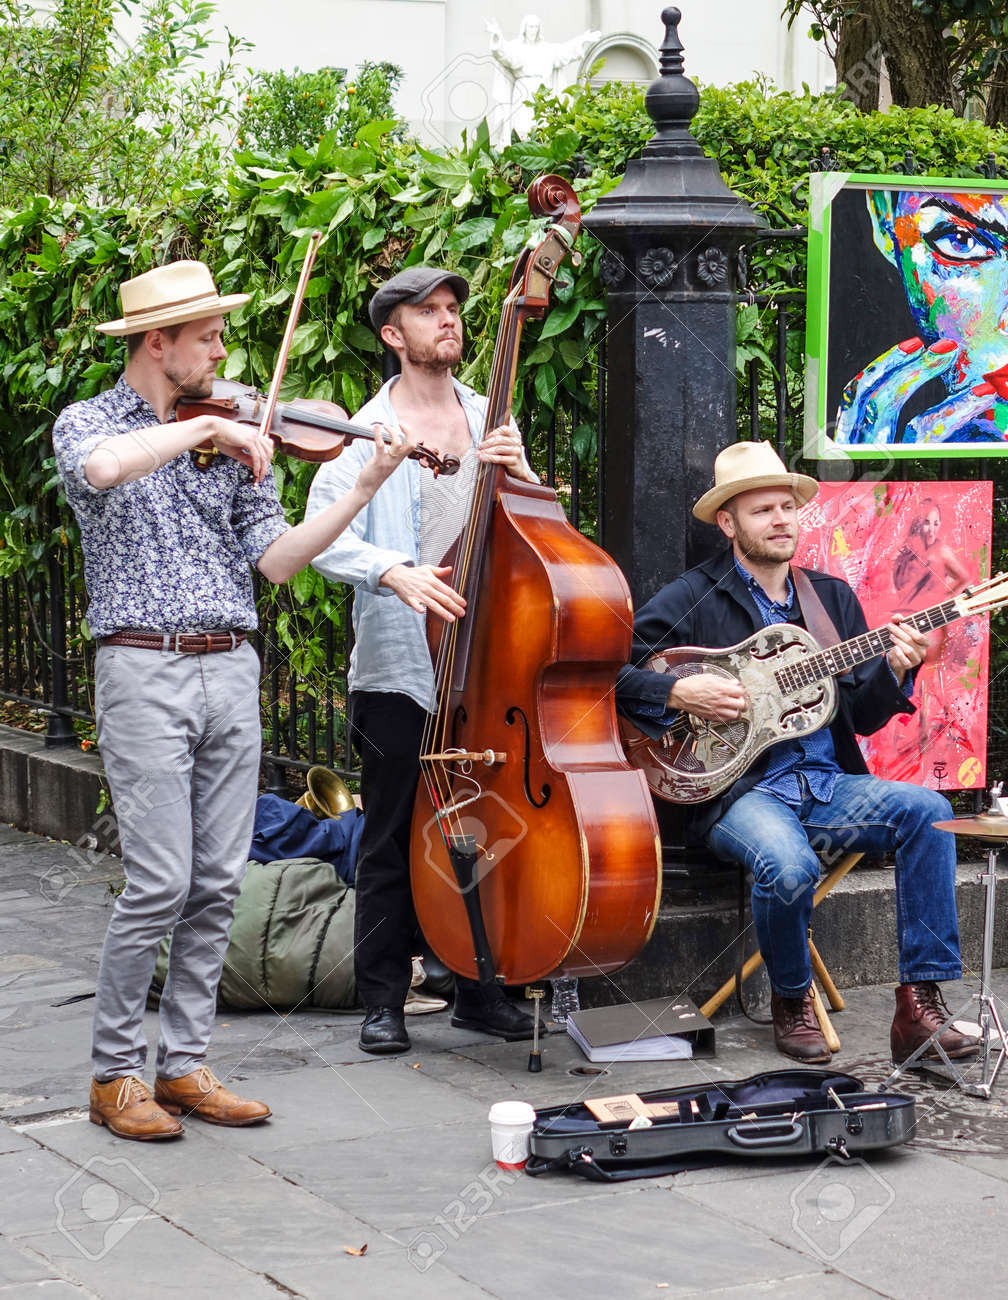 Typical street musicians for jazz music in New Orleans - NEW ORLEANS, LOUSIANA - APRIL 17, 2016 - 56094337